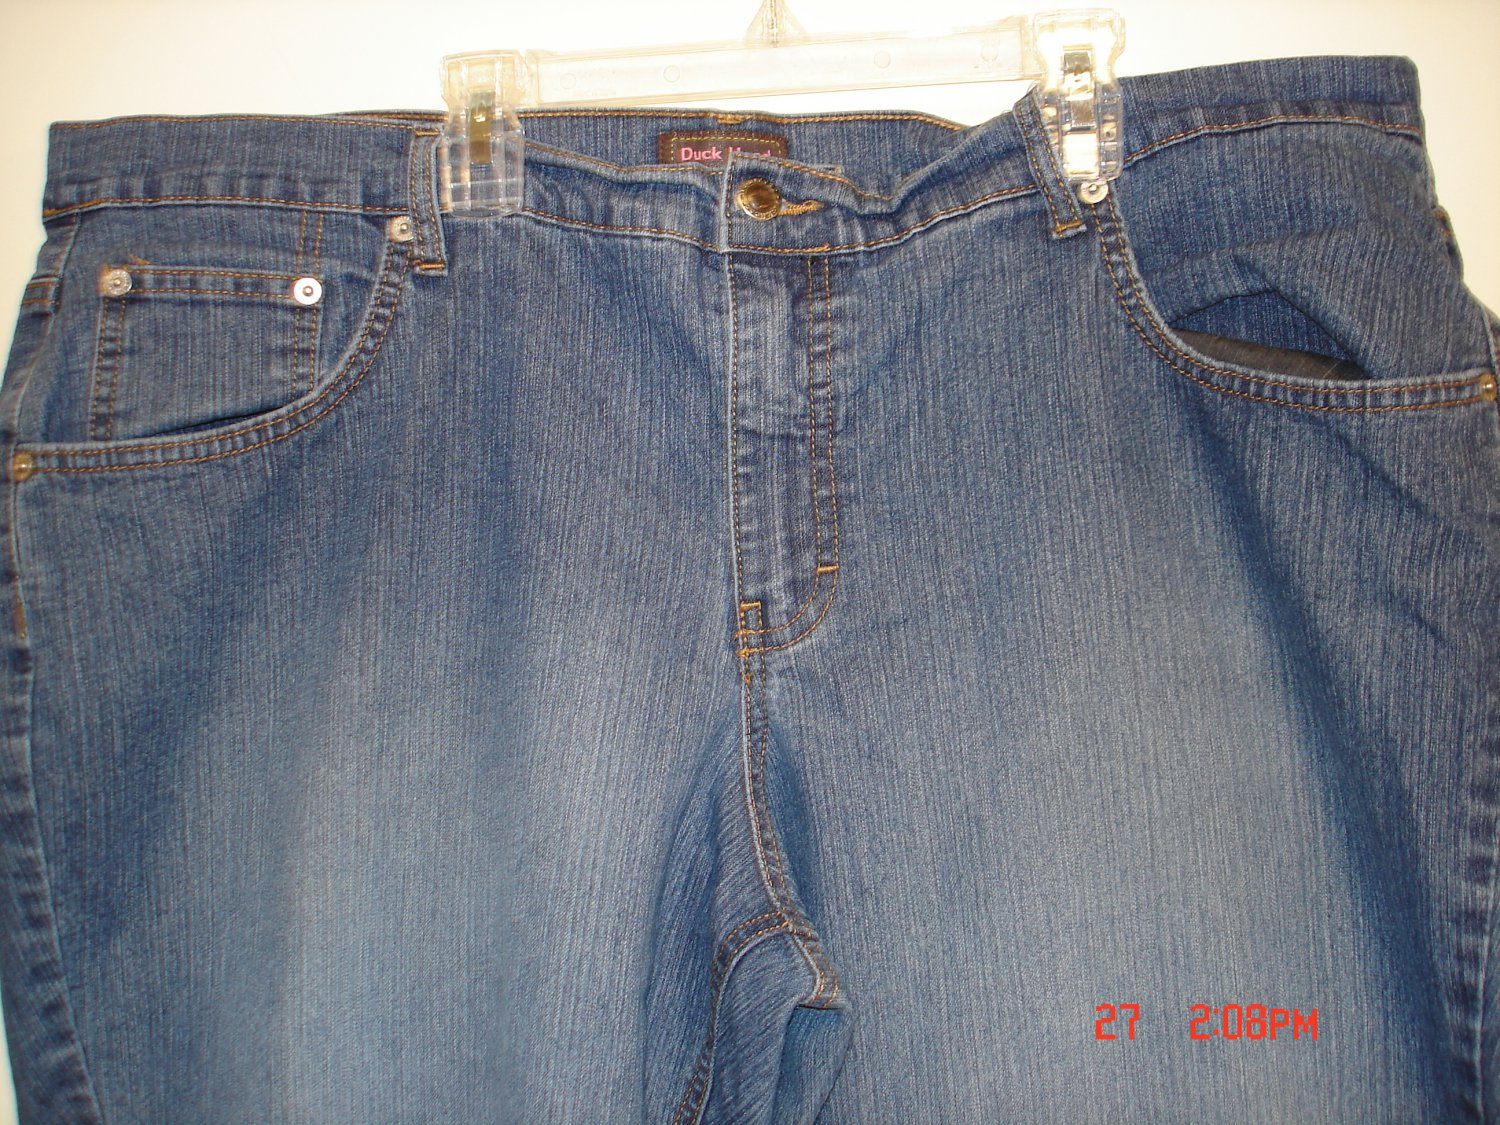 Jeans, Size 24